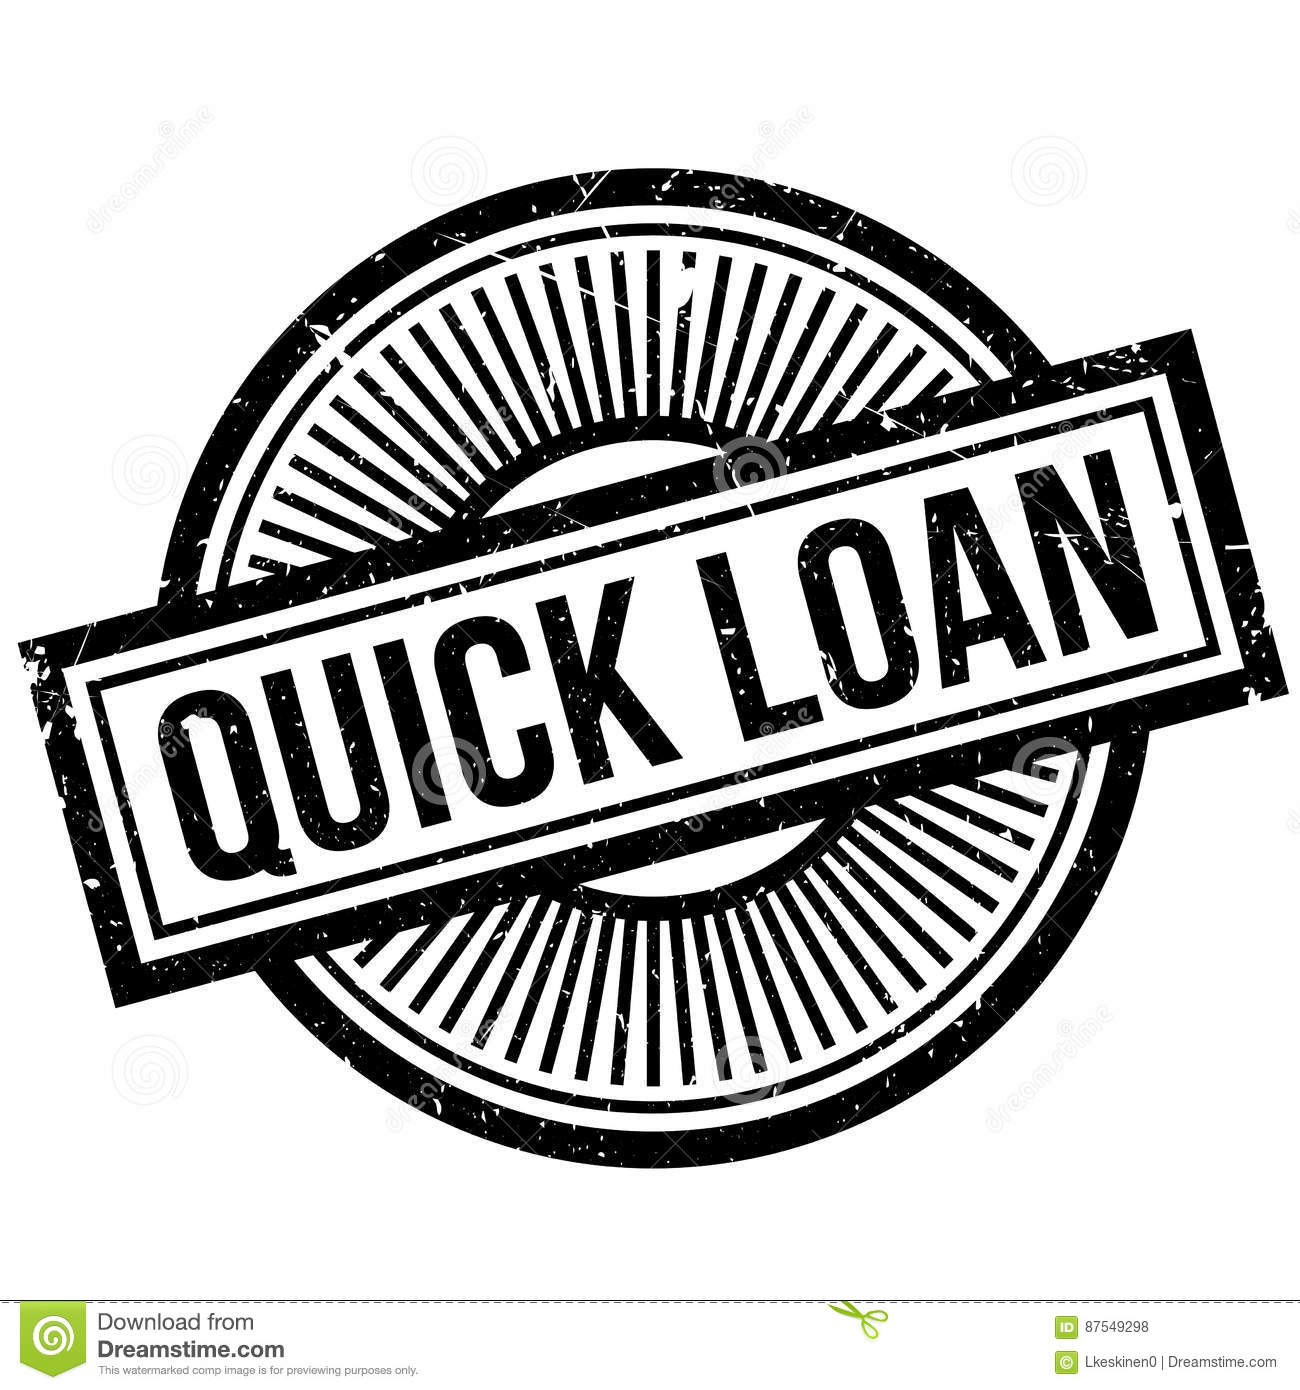 Quick Loan Rubber Stamp Stock Vector. Illustration Of